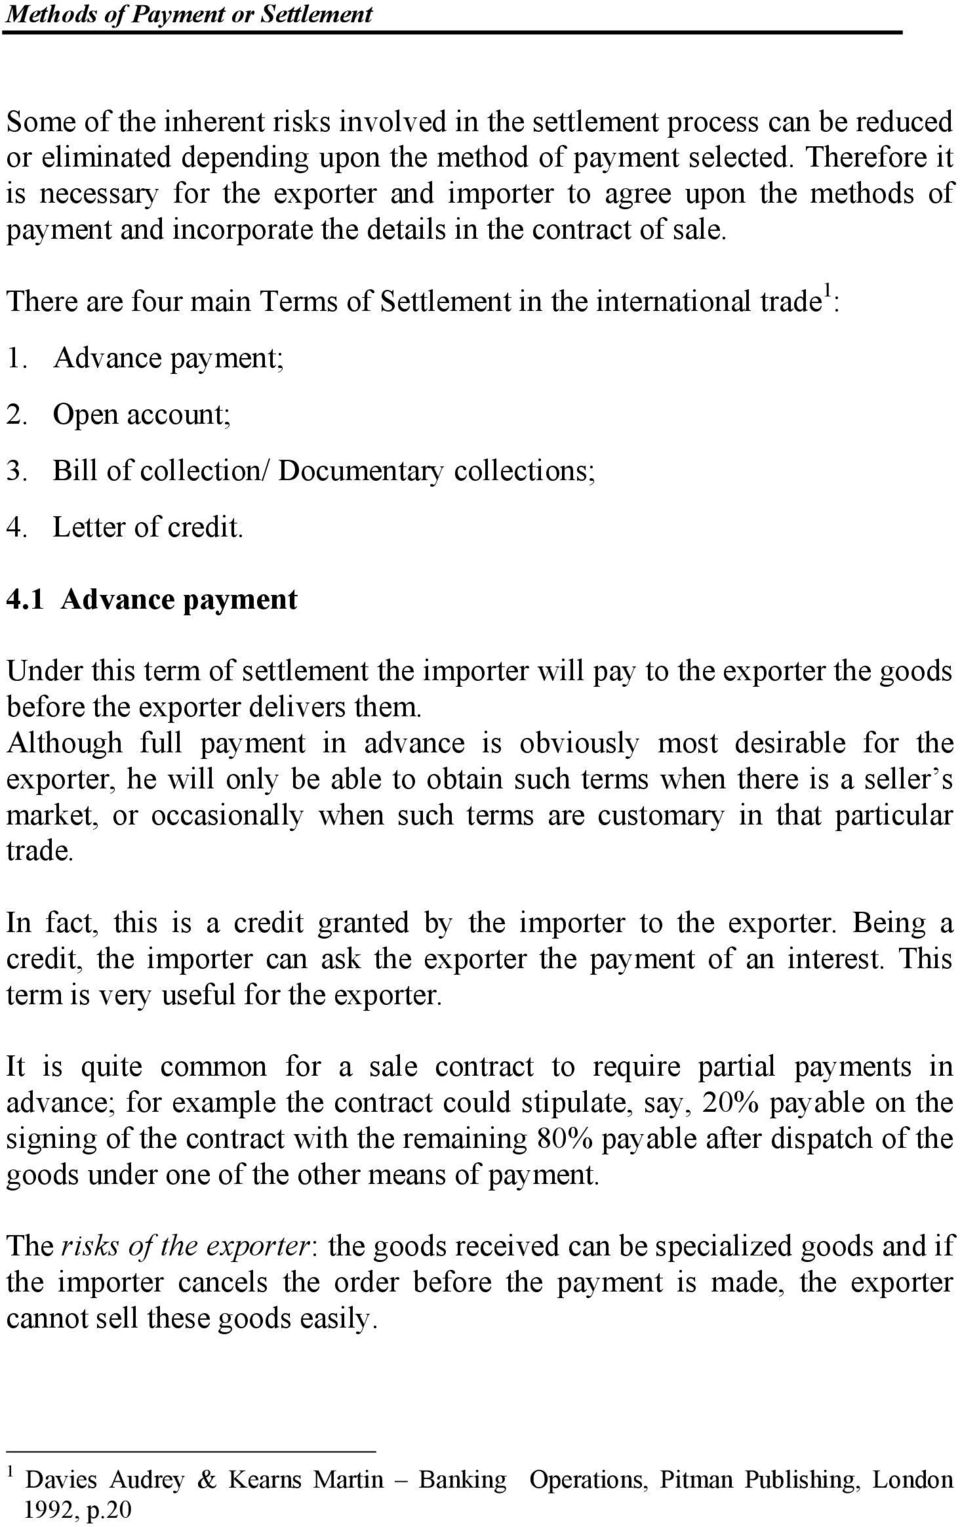 There are four main Terms of Settlement in the international trade 1 : 1. Advance payment; 2. Open account; 3. Bill of collection/ Documentary collections; 4.